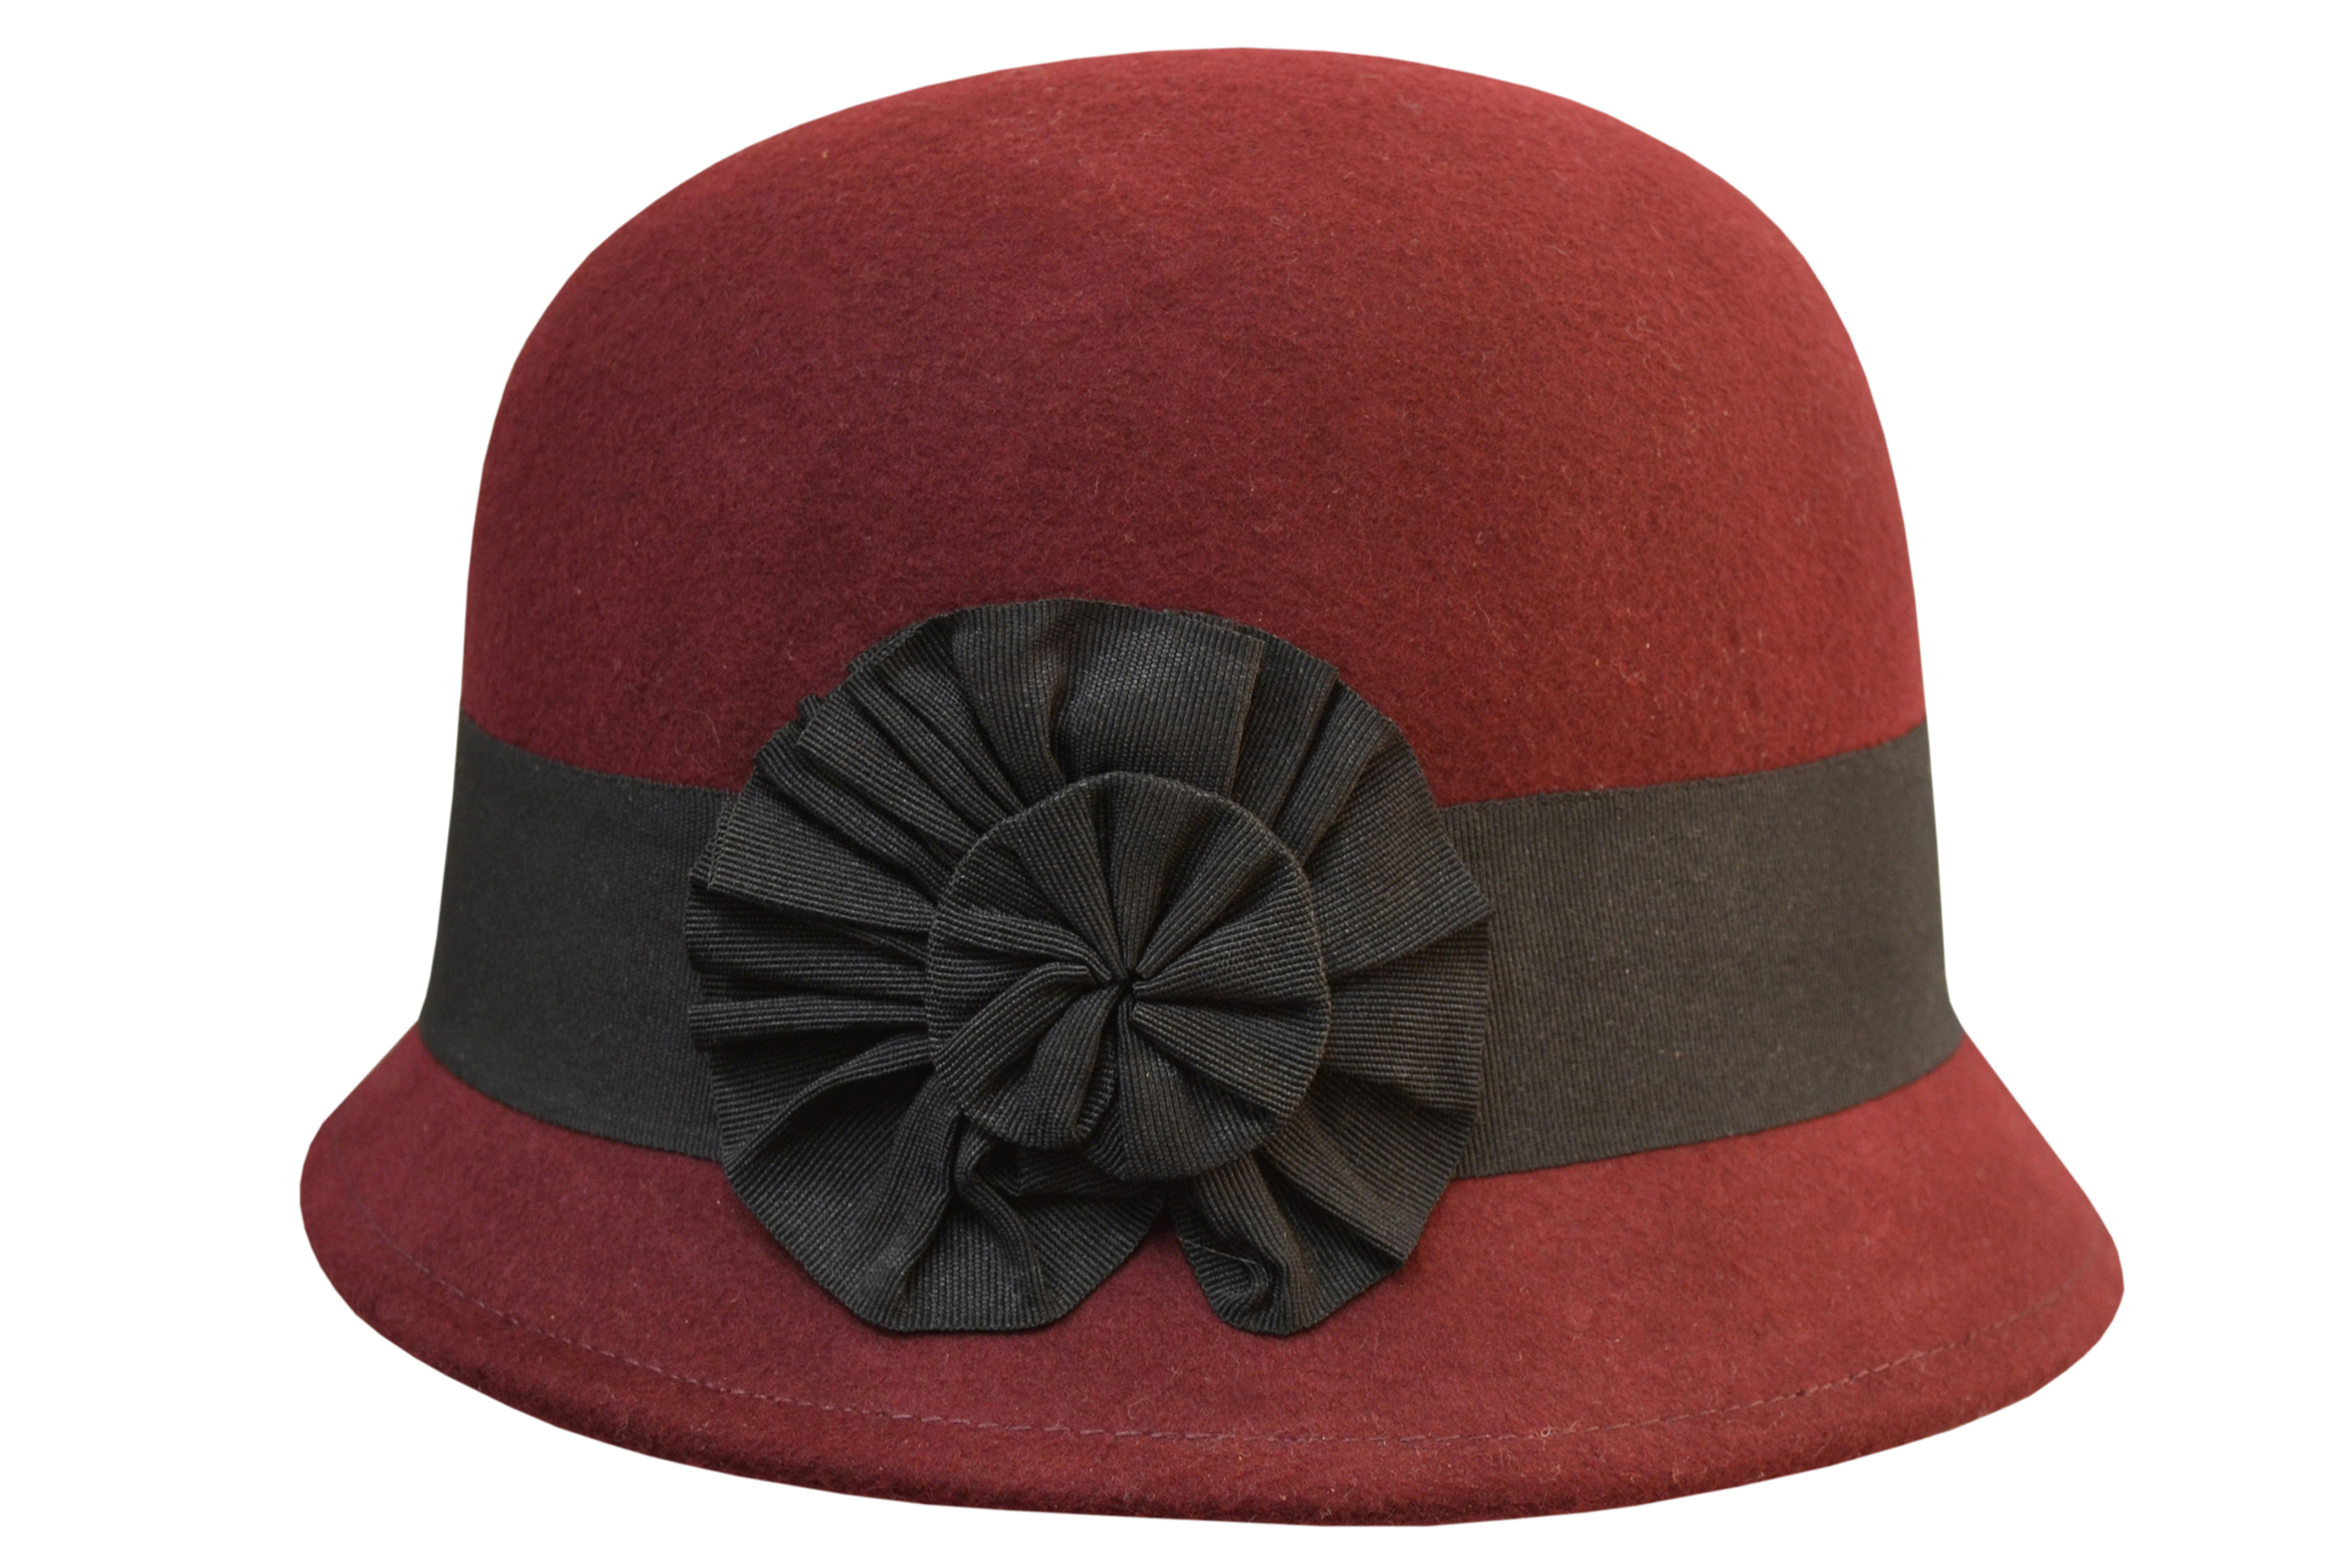 Imported Wool Felt Cloche with Prize Ribbon - Hills Hats